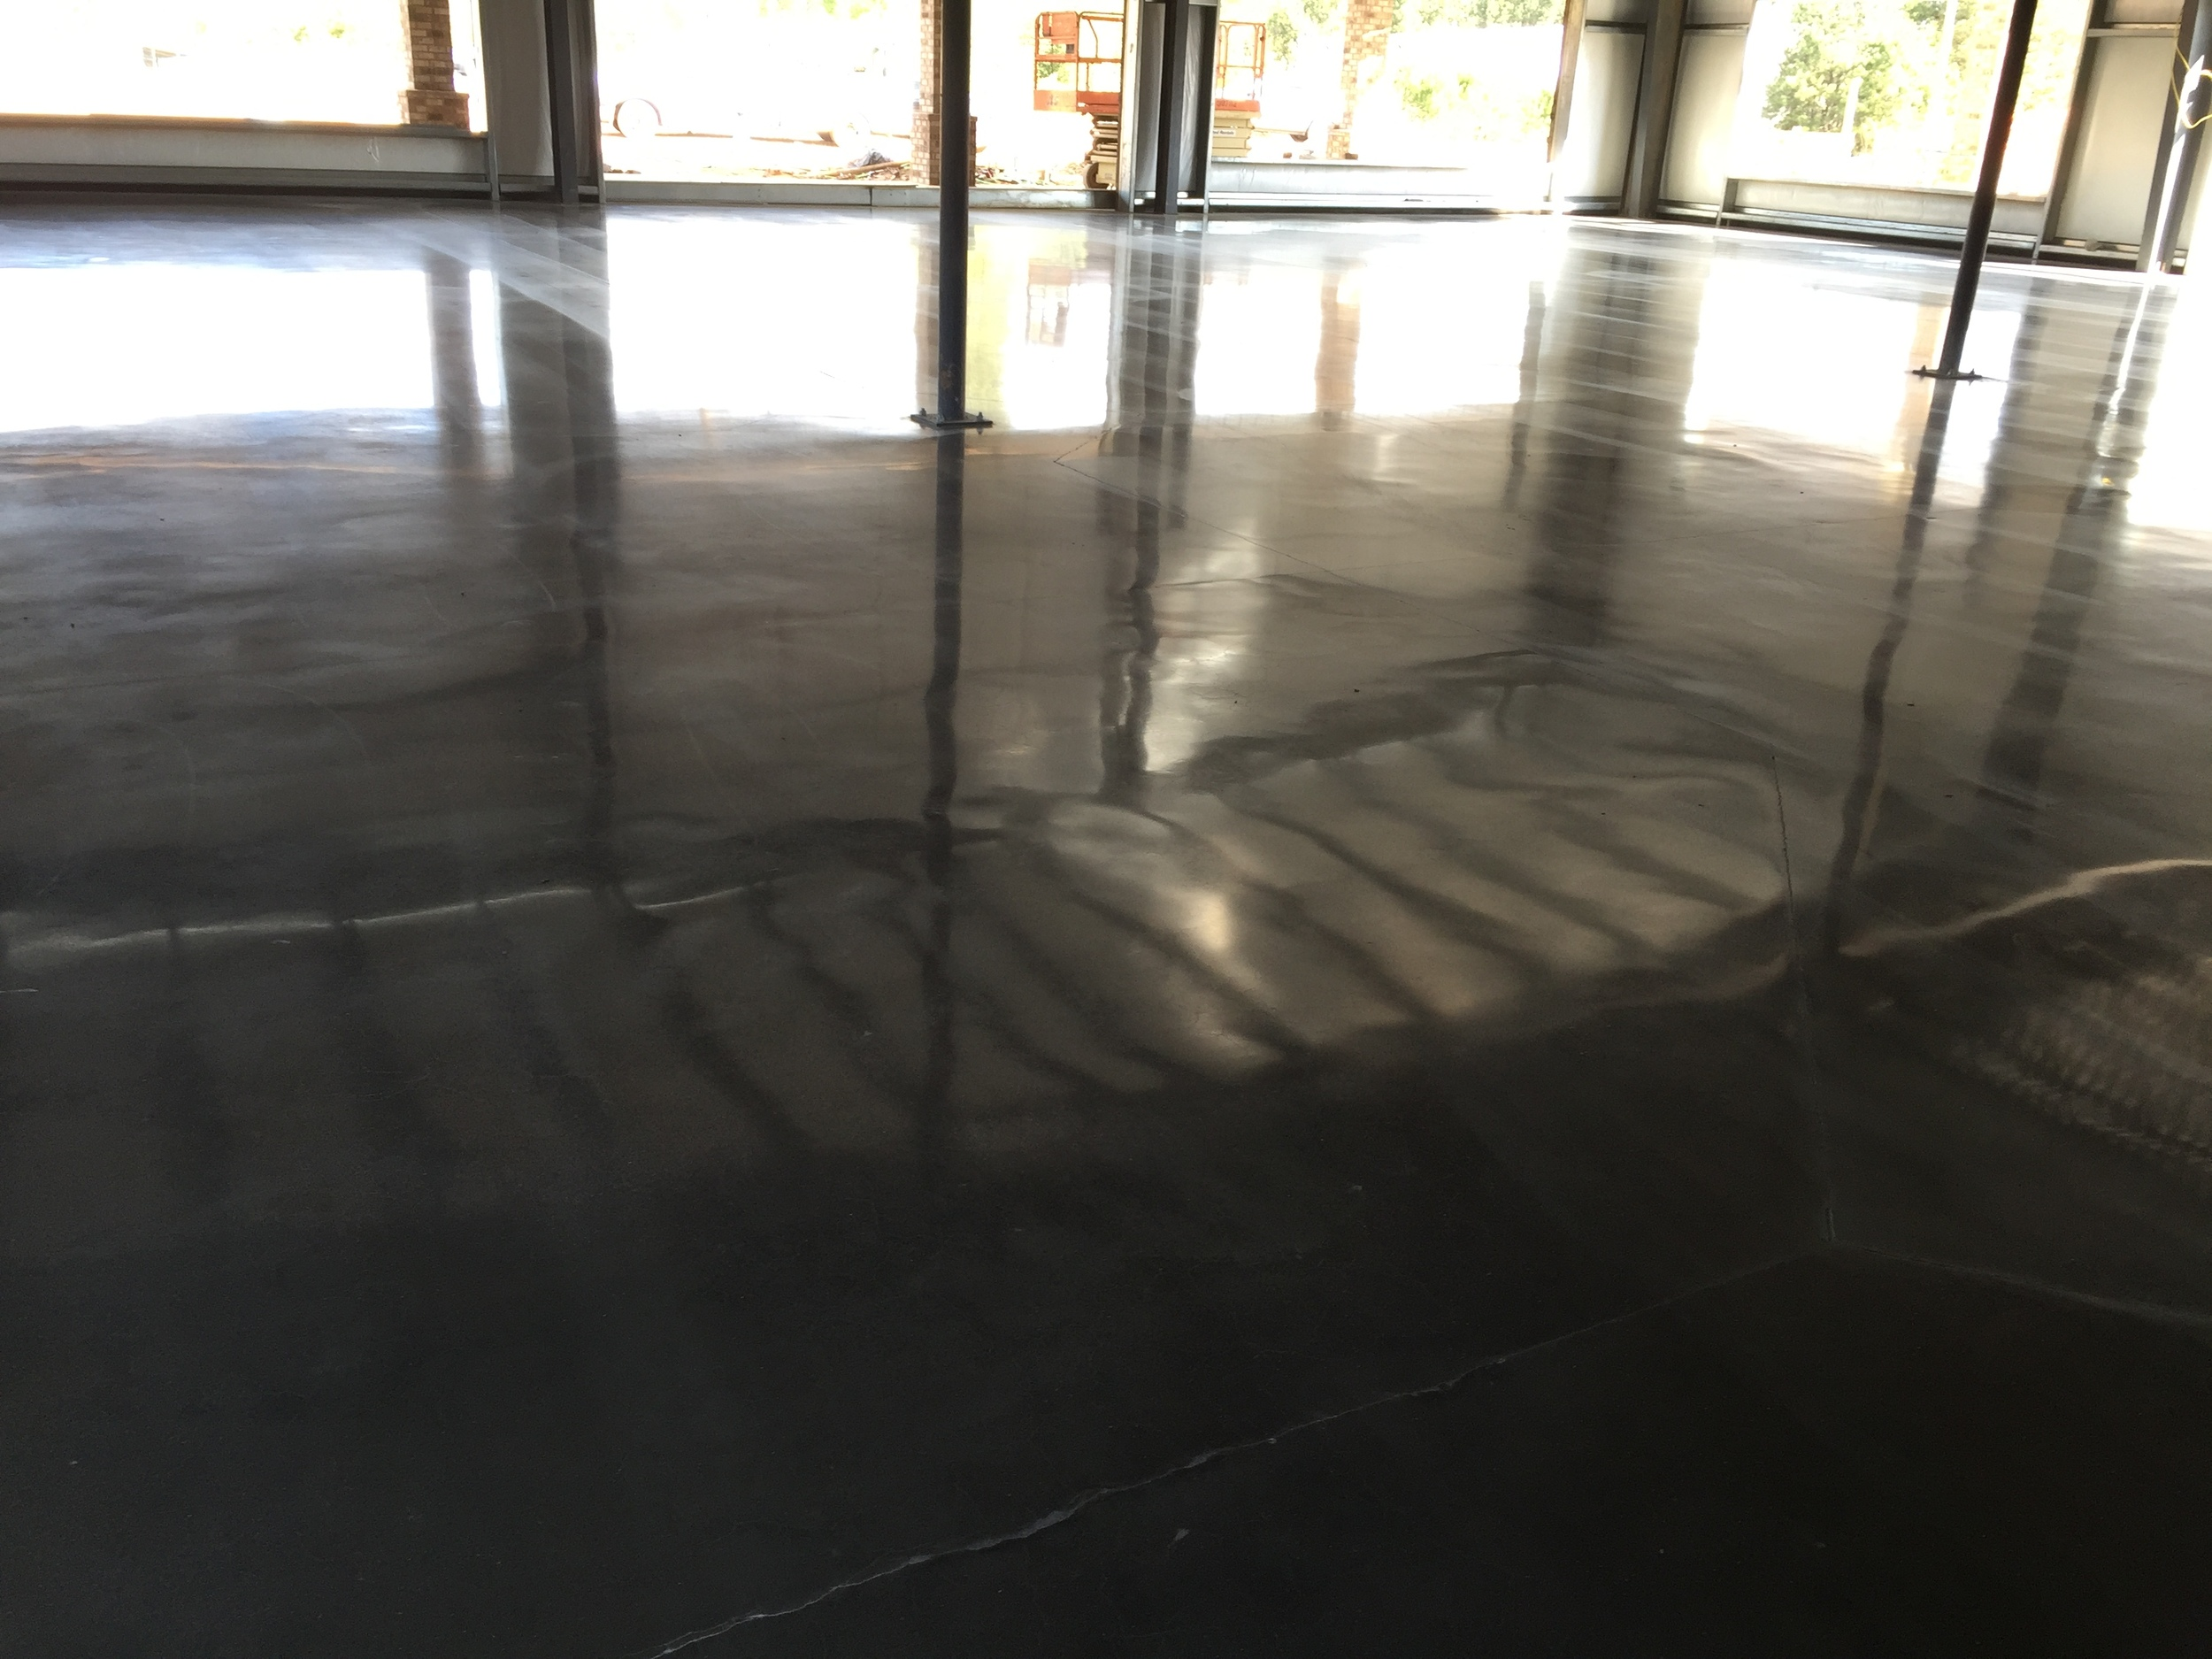 Steel Beam Reflection on Polished Floor